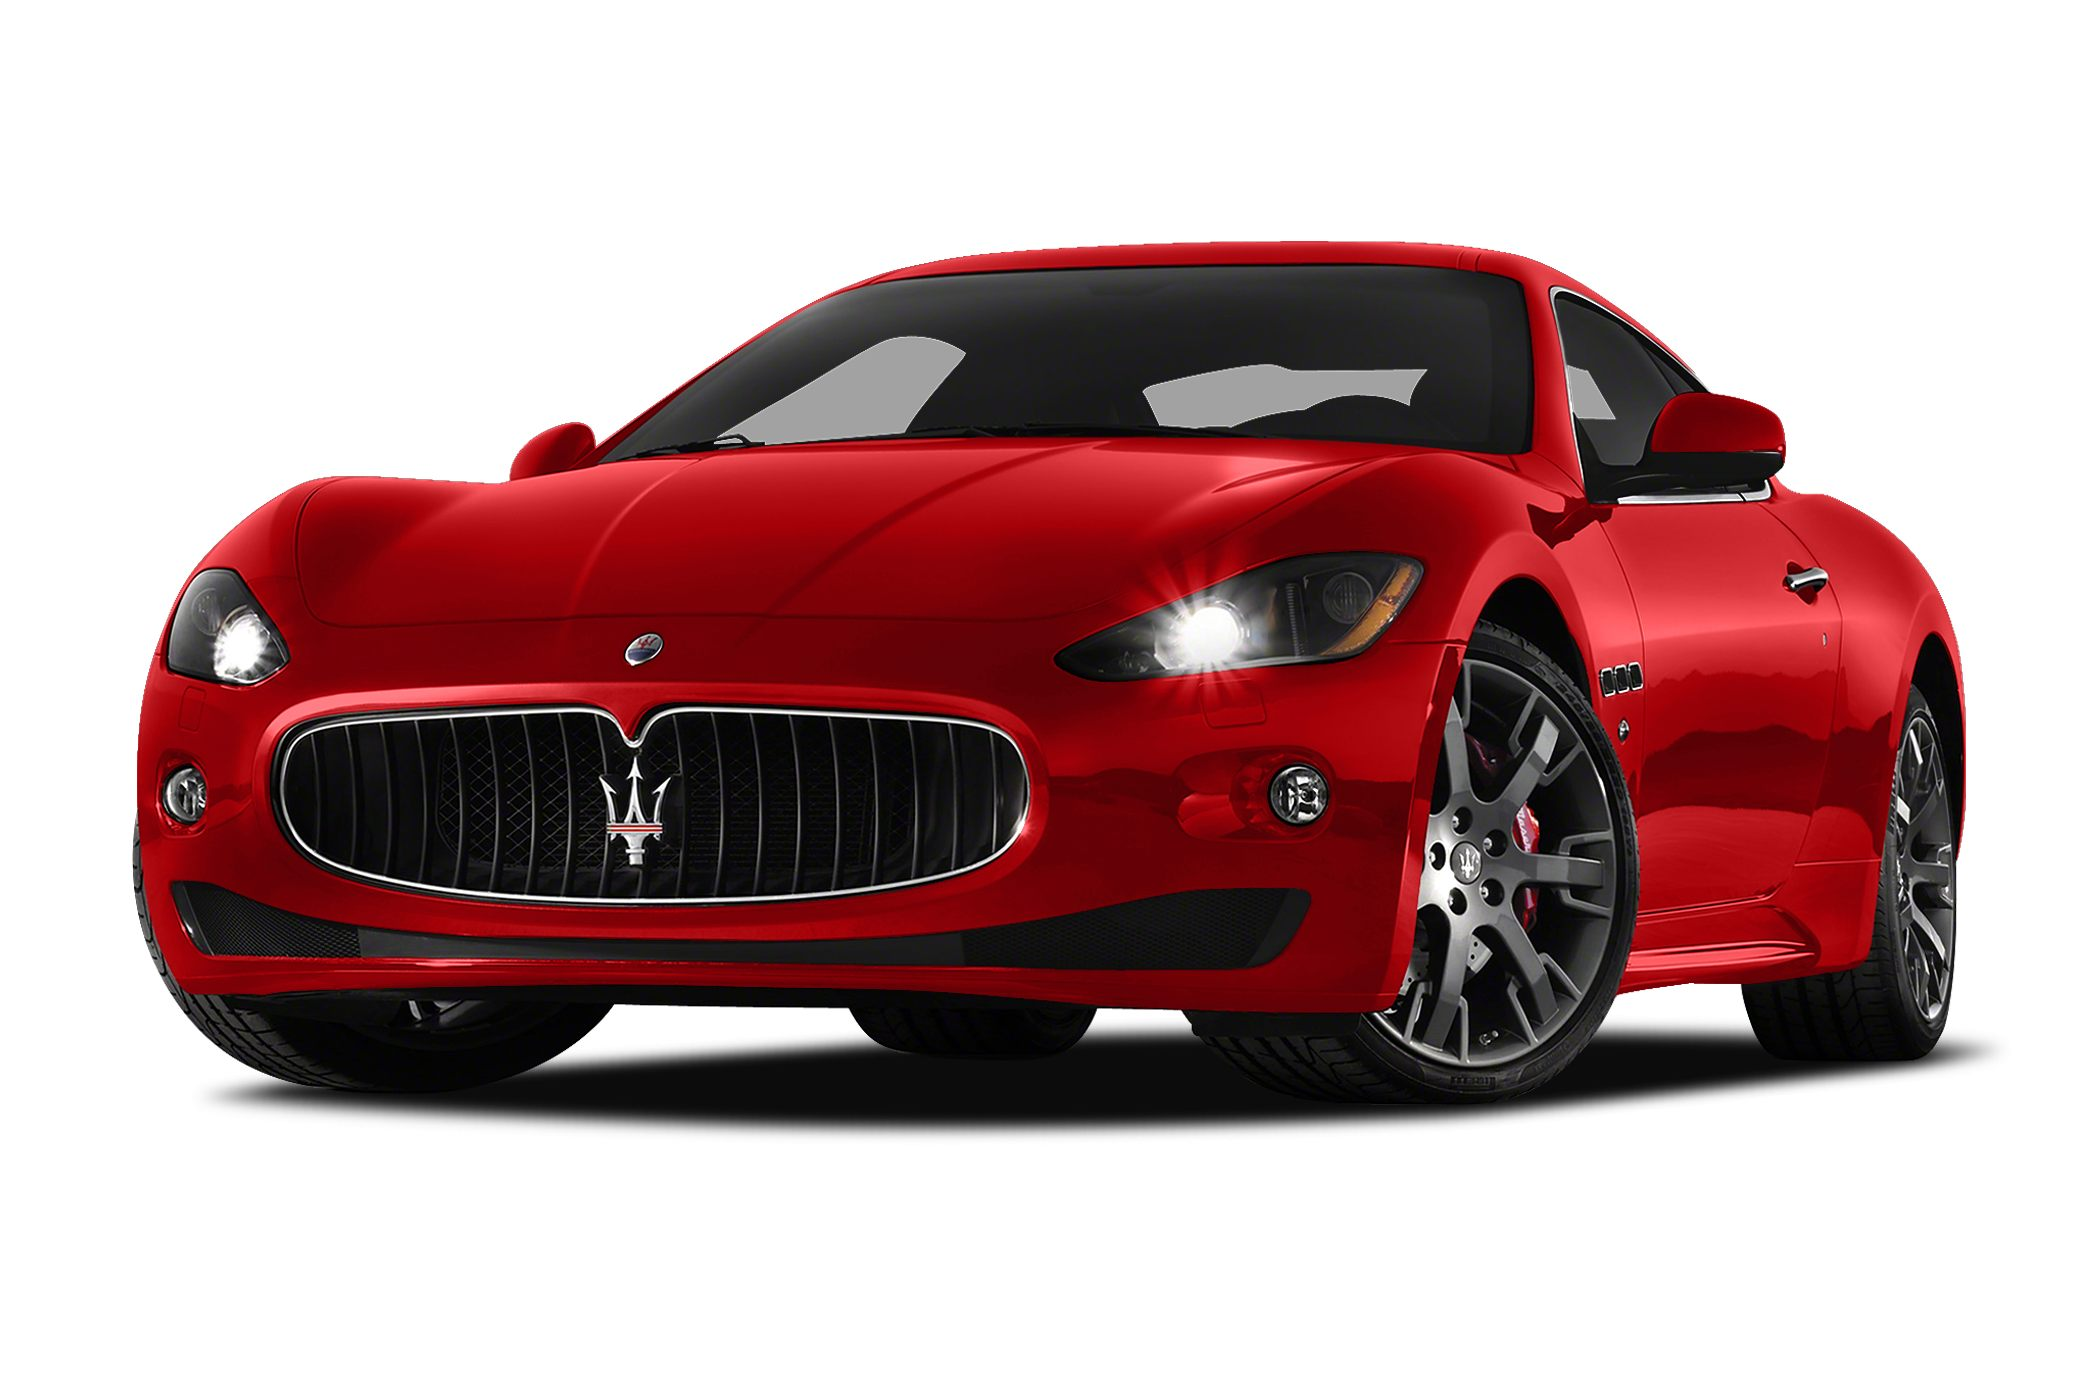 2010 Maserati GranTurismo